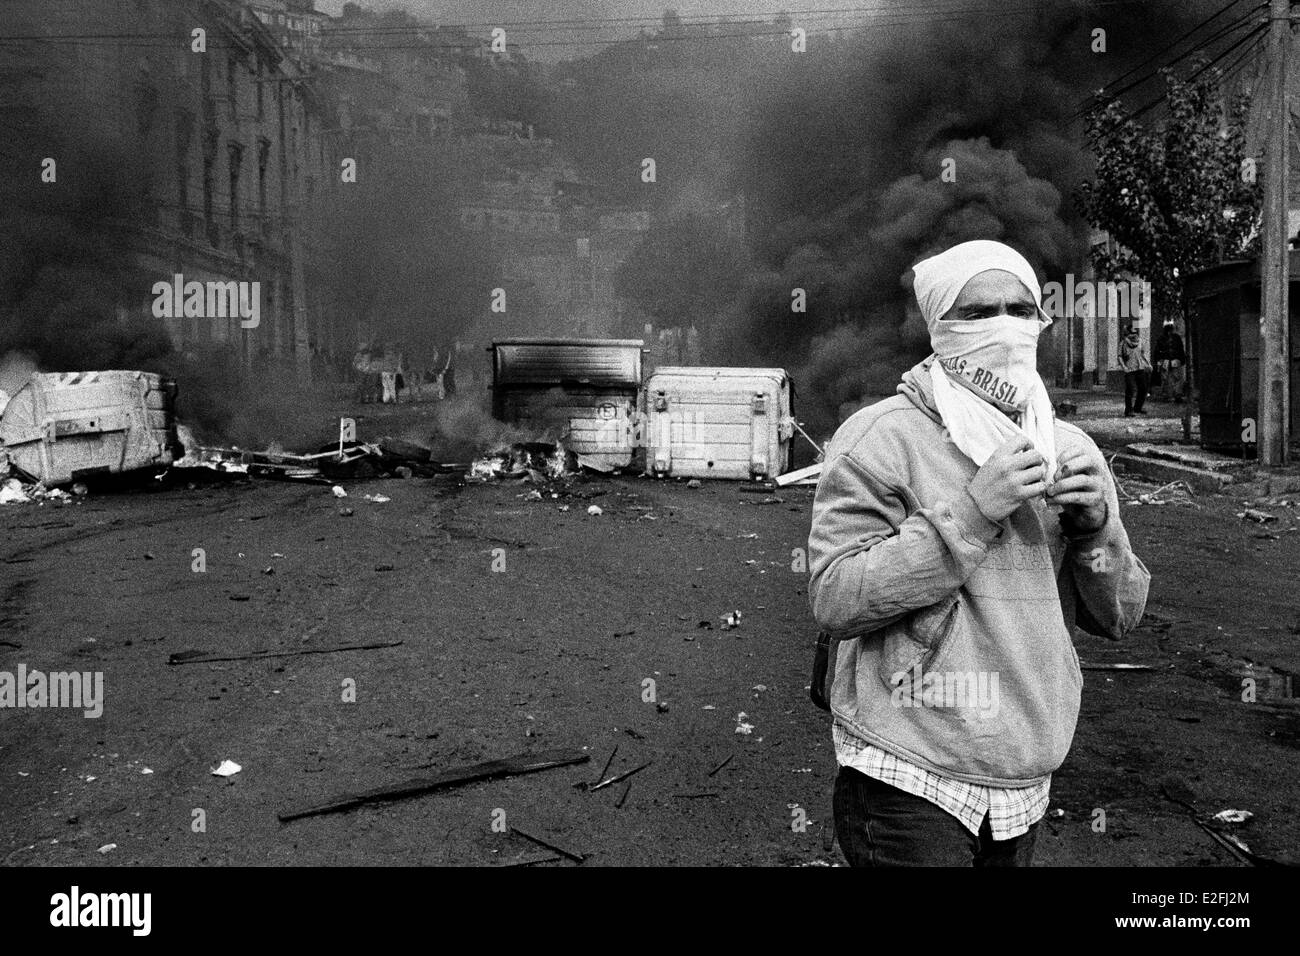 A Chilean student stands in front of the burning barricade during the anti-government protest in Valparaíso, - Stock Image